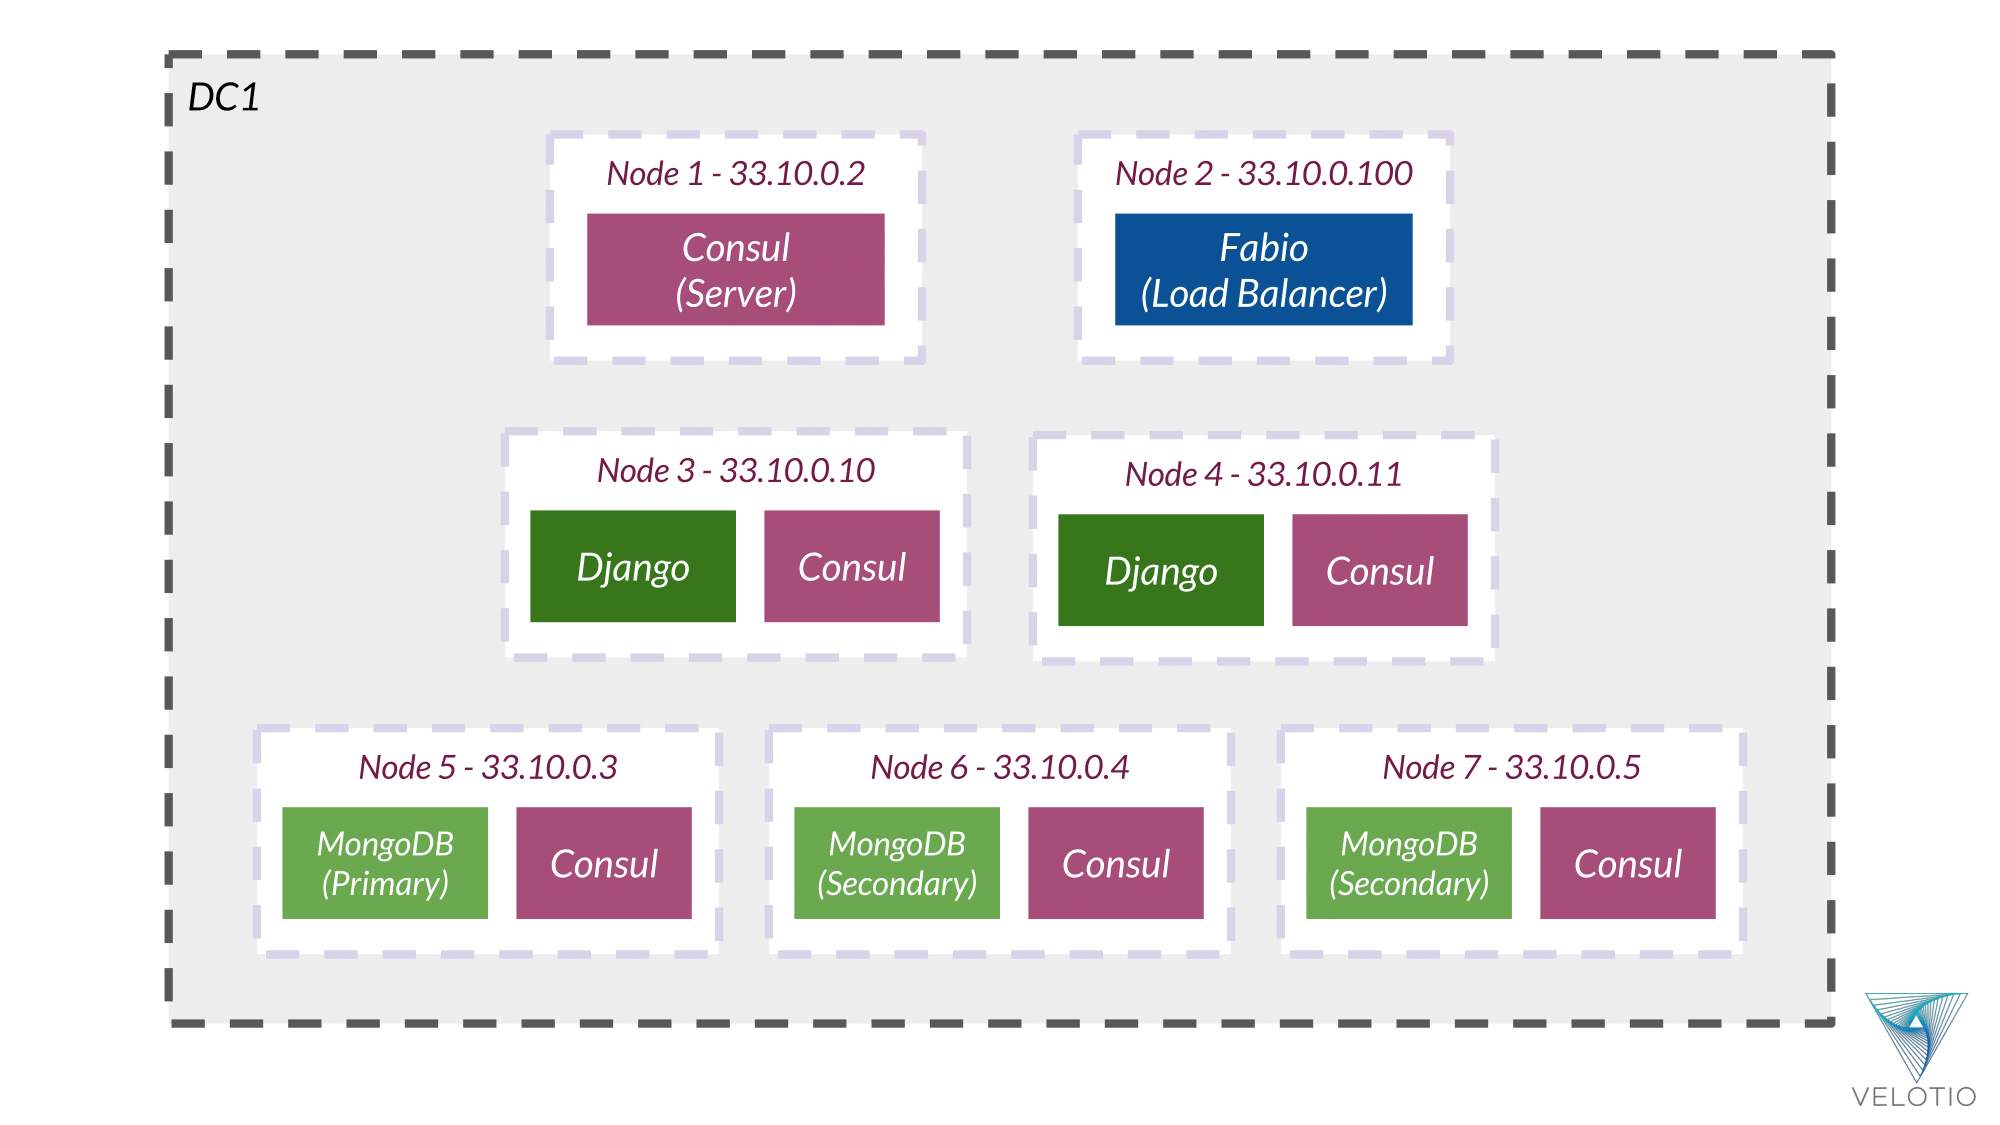 Example Application nodes and services deployed on them